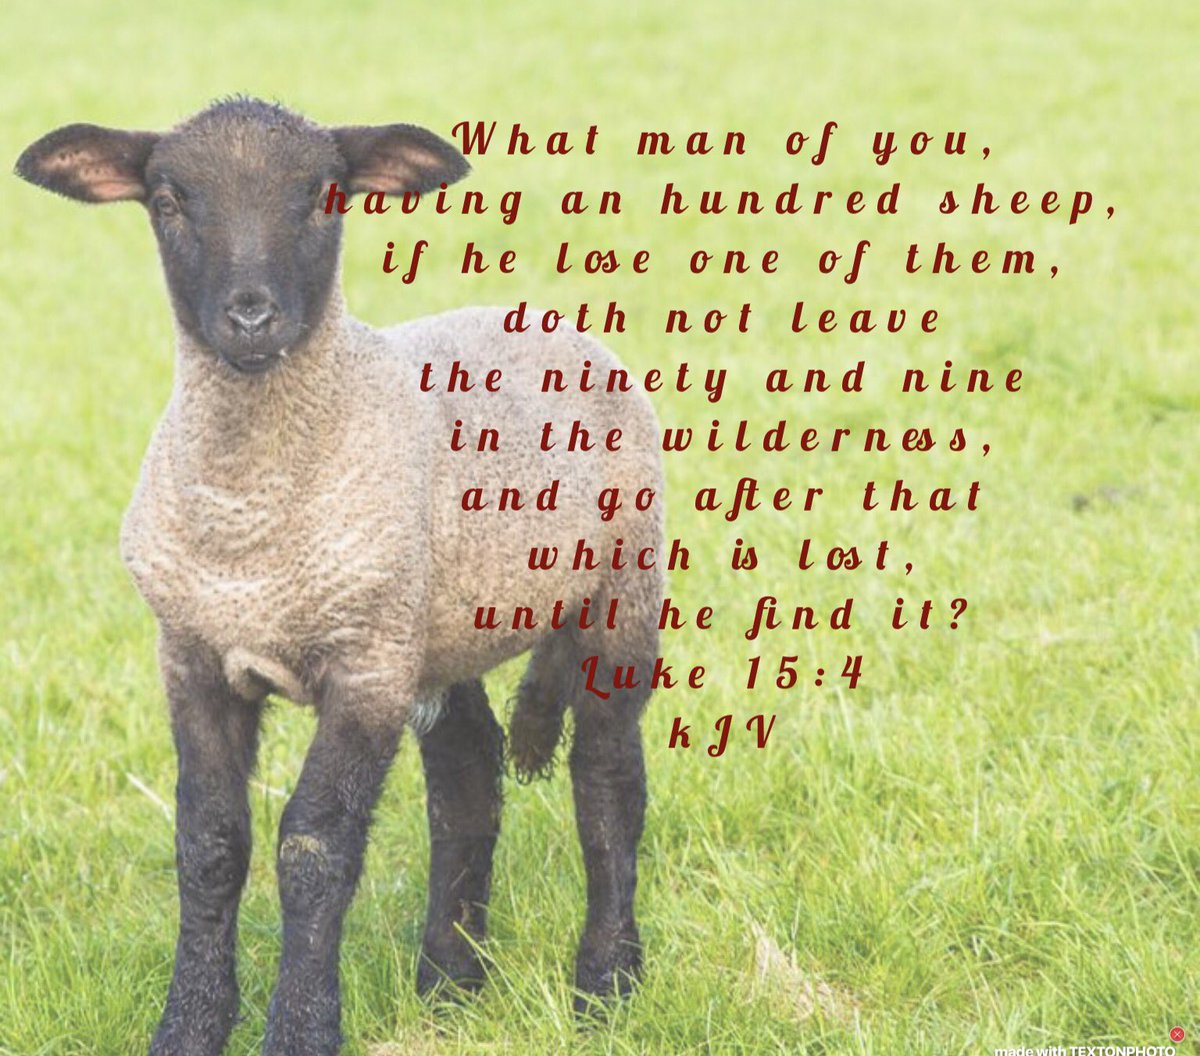 And when he hath found it, he layeth it on his shoulders, rejoicing Luke 15:5 KJV #JesusChrist Good Shepherd #looking for His #lost #sheep <br>http://pic.twitter.com/cJCfZ7rTeG